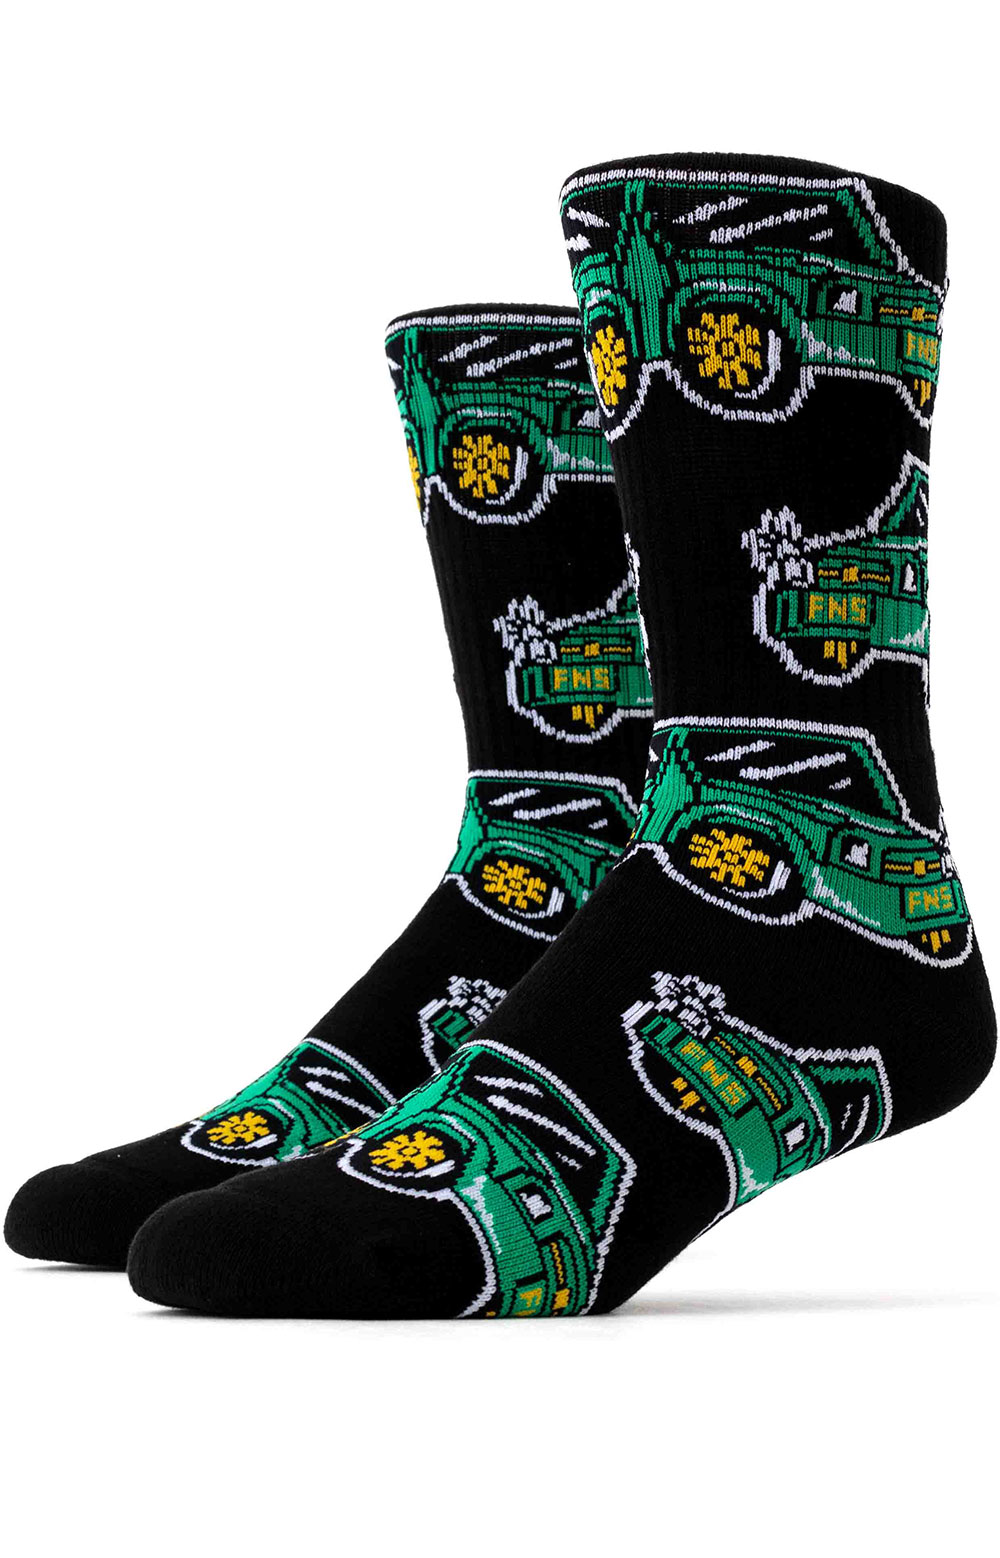 Show Out Socks - Green